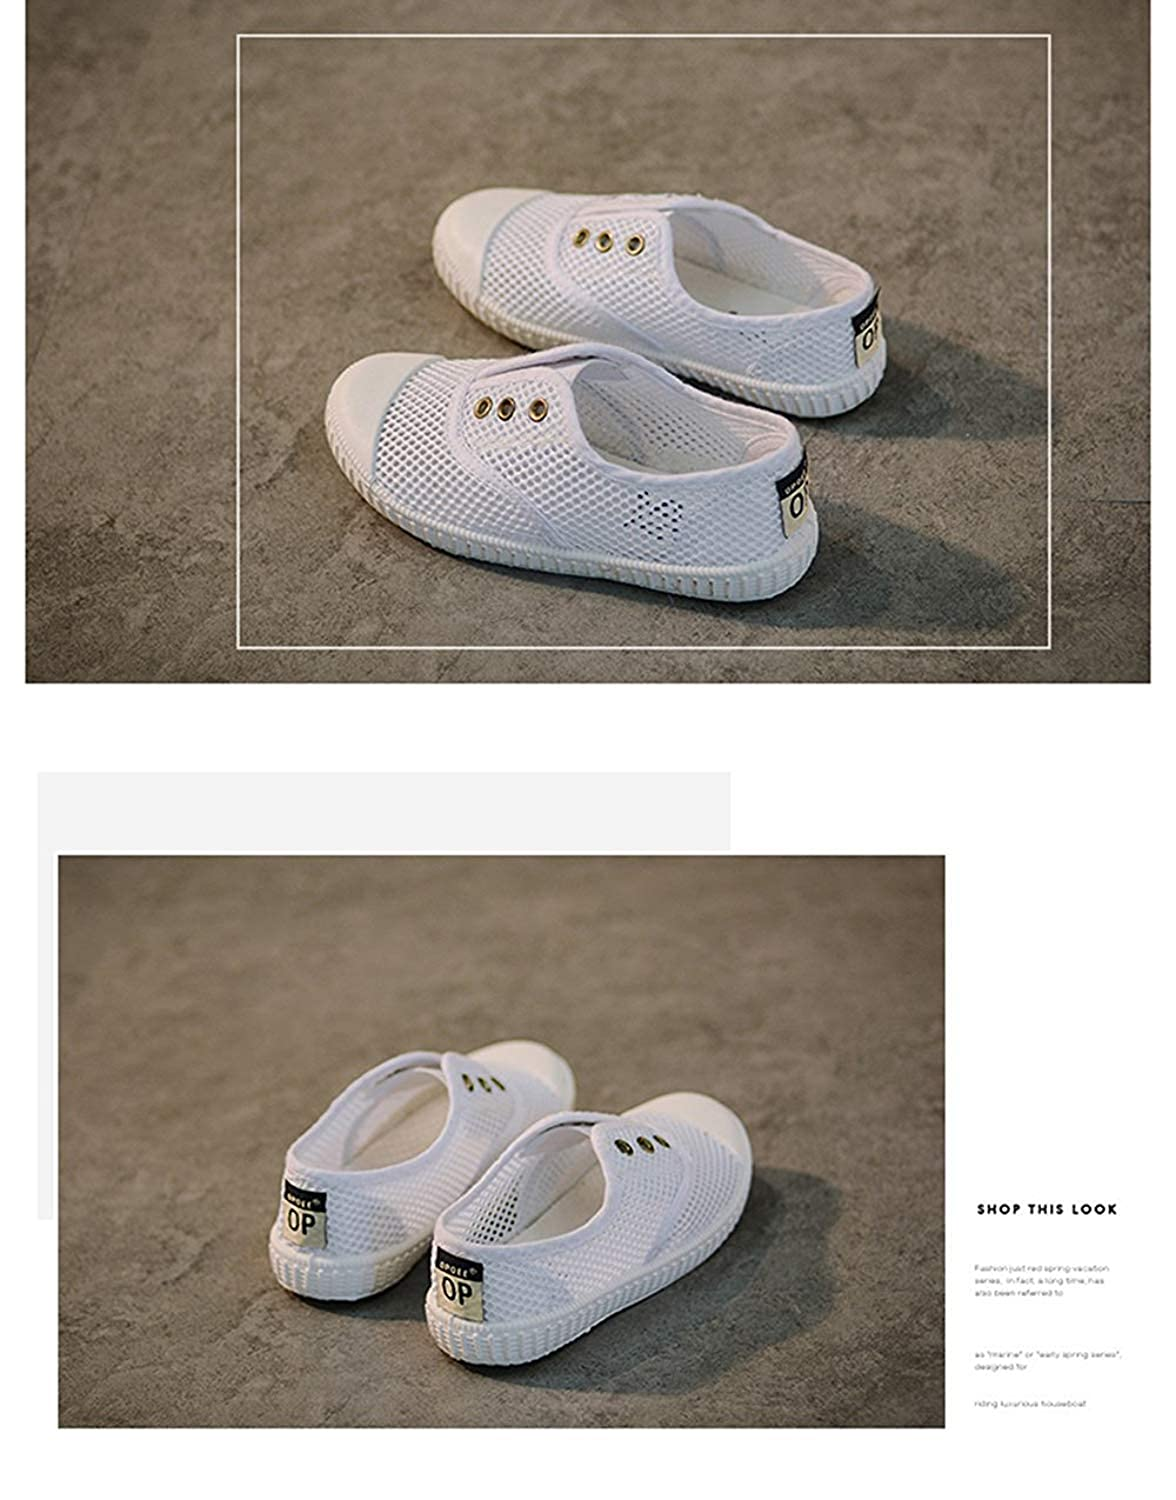 KaMiao Cute Toddler Flat Canvas Light Weight Laceless Slip-on Sneakers Walking Tennis Shoes School Shoes